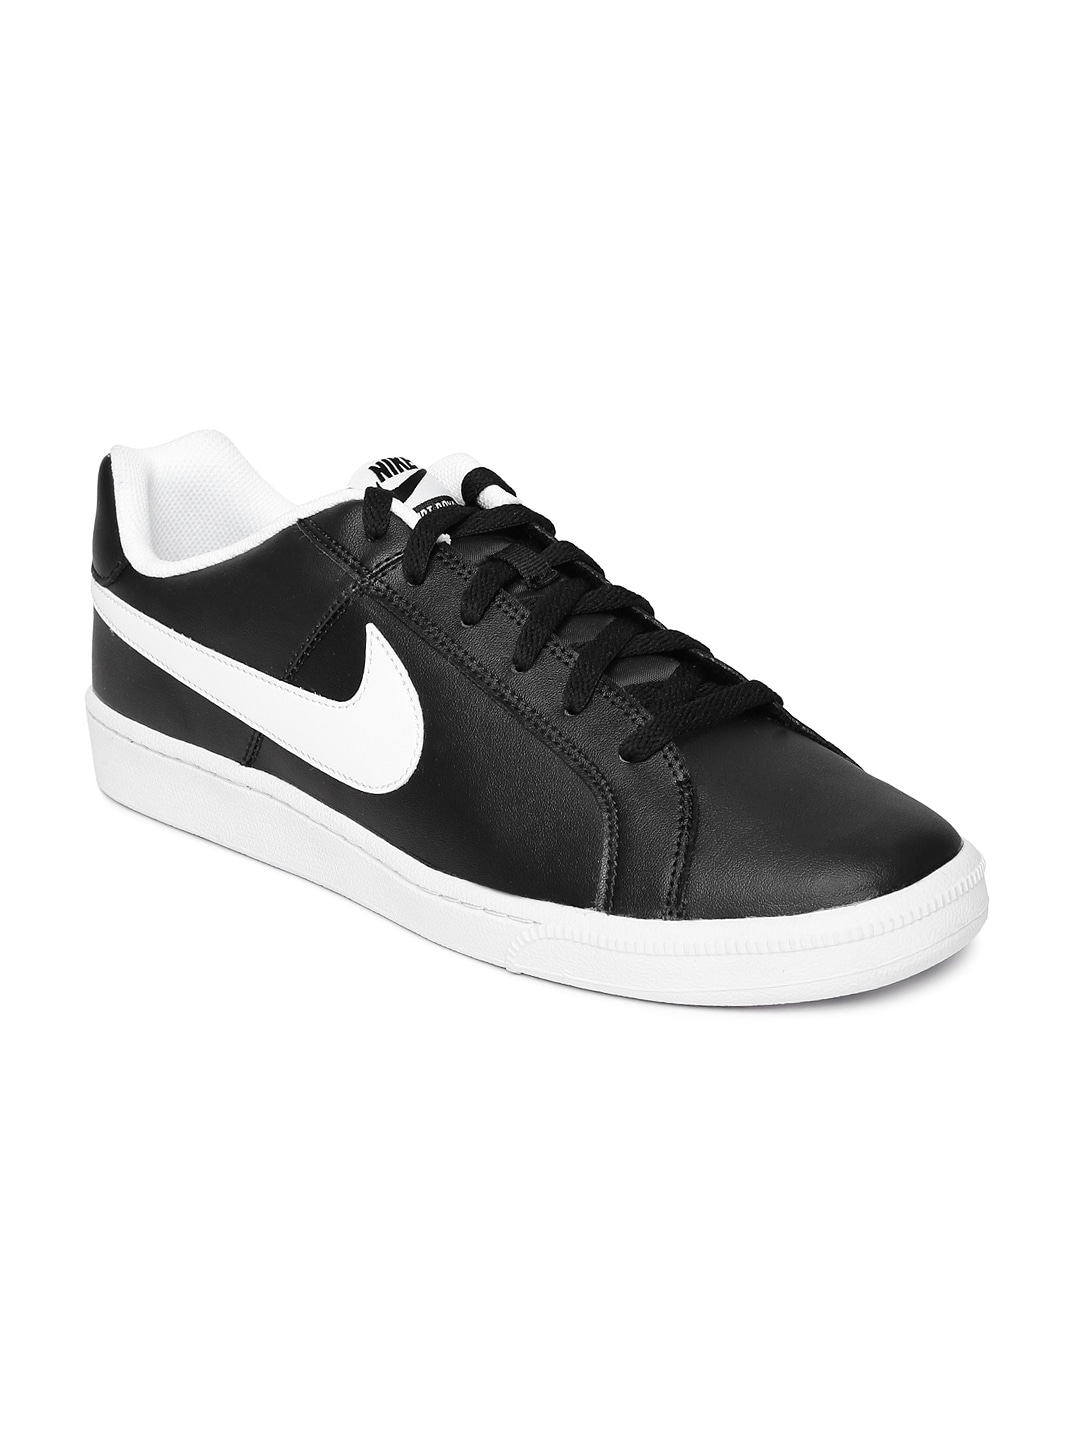 Black Buy Green Casual Shoes Nike 0NvwOnm8